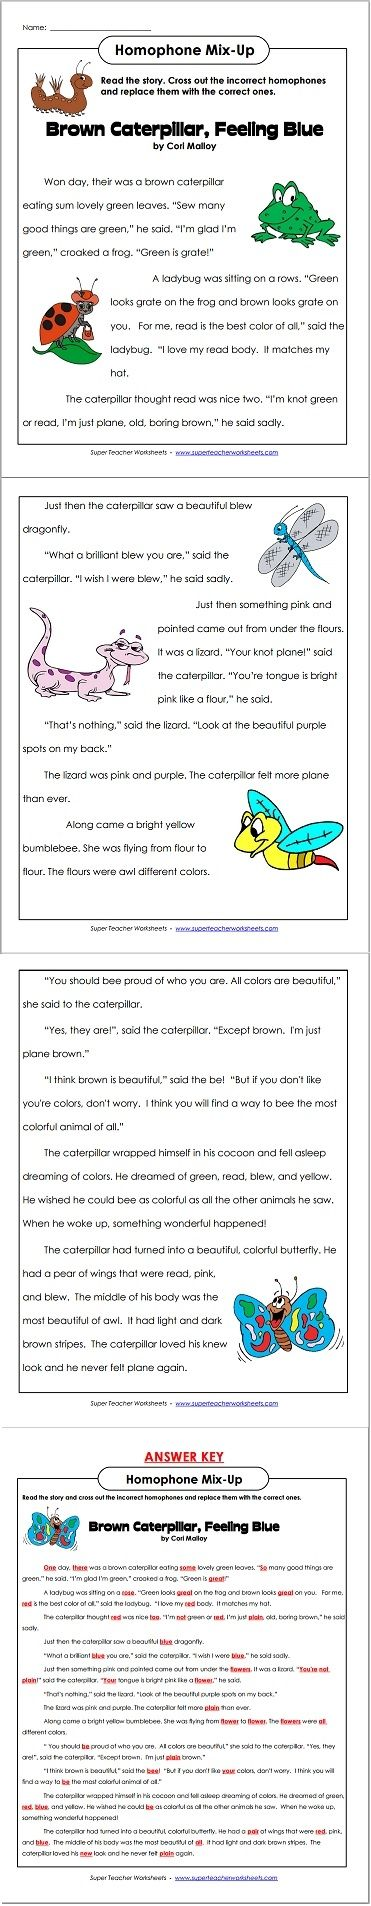 Check out this clever homophone mix-up reading passage!